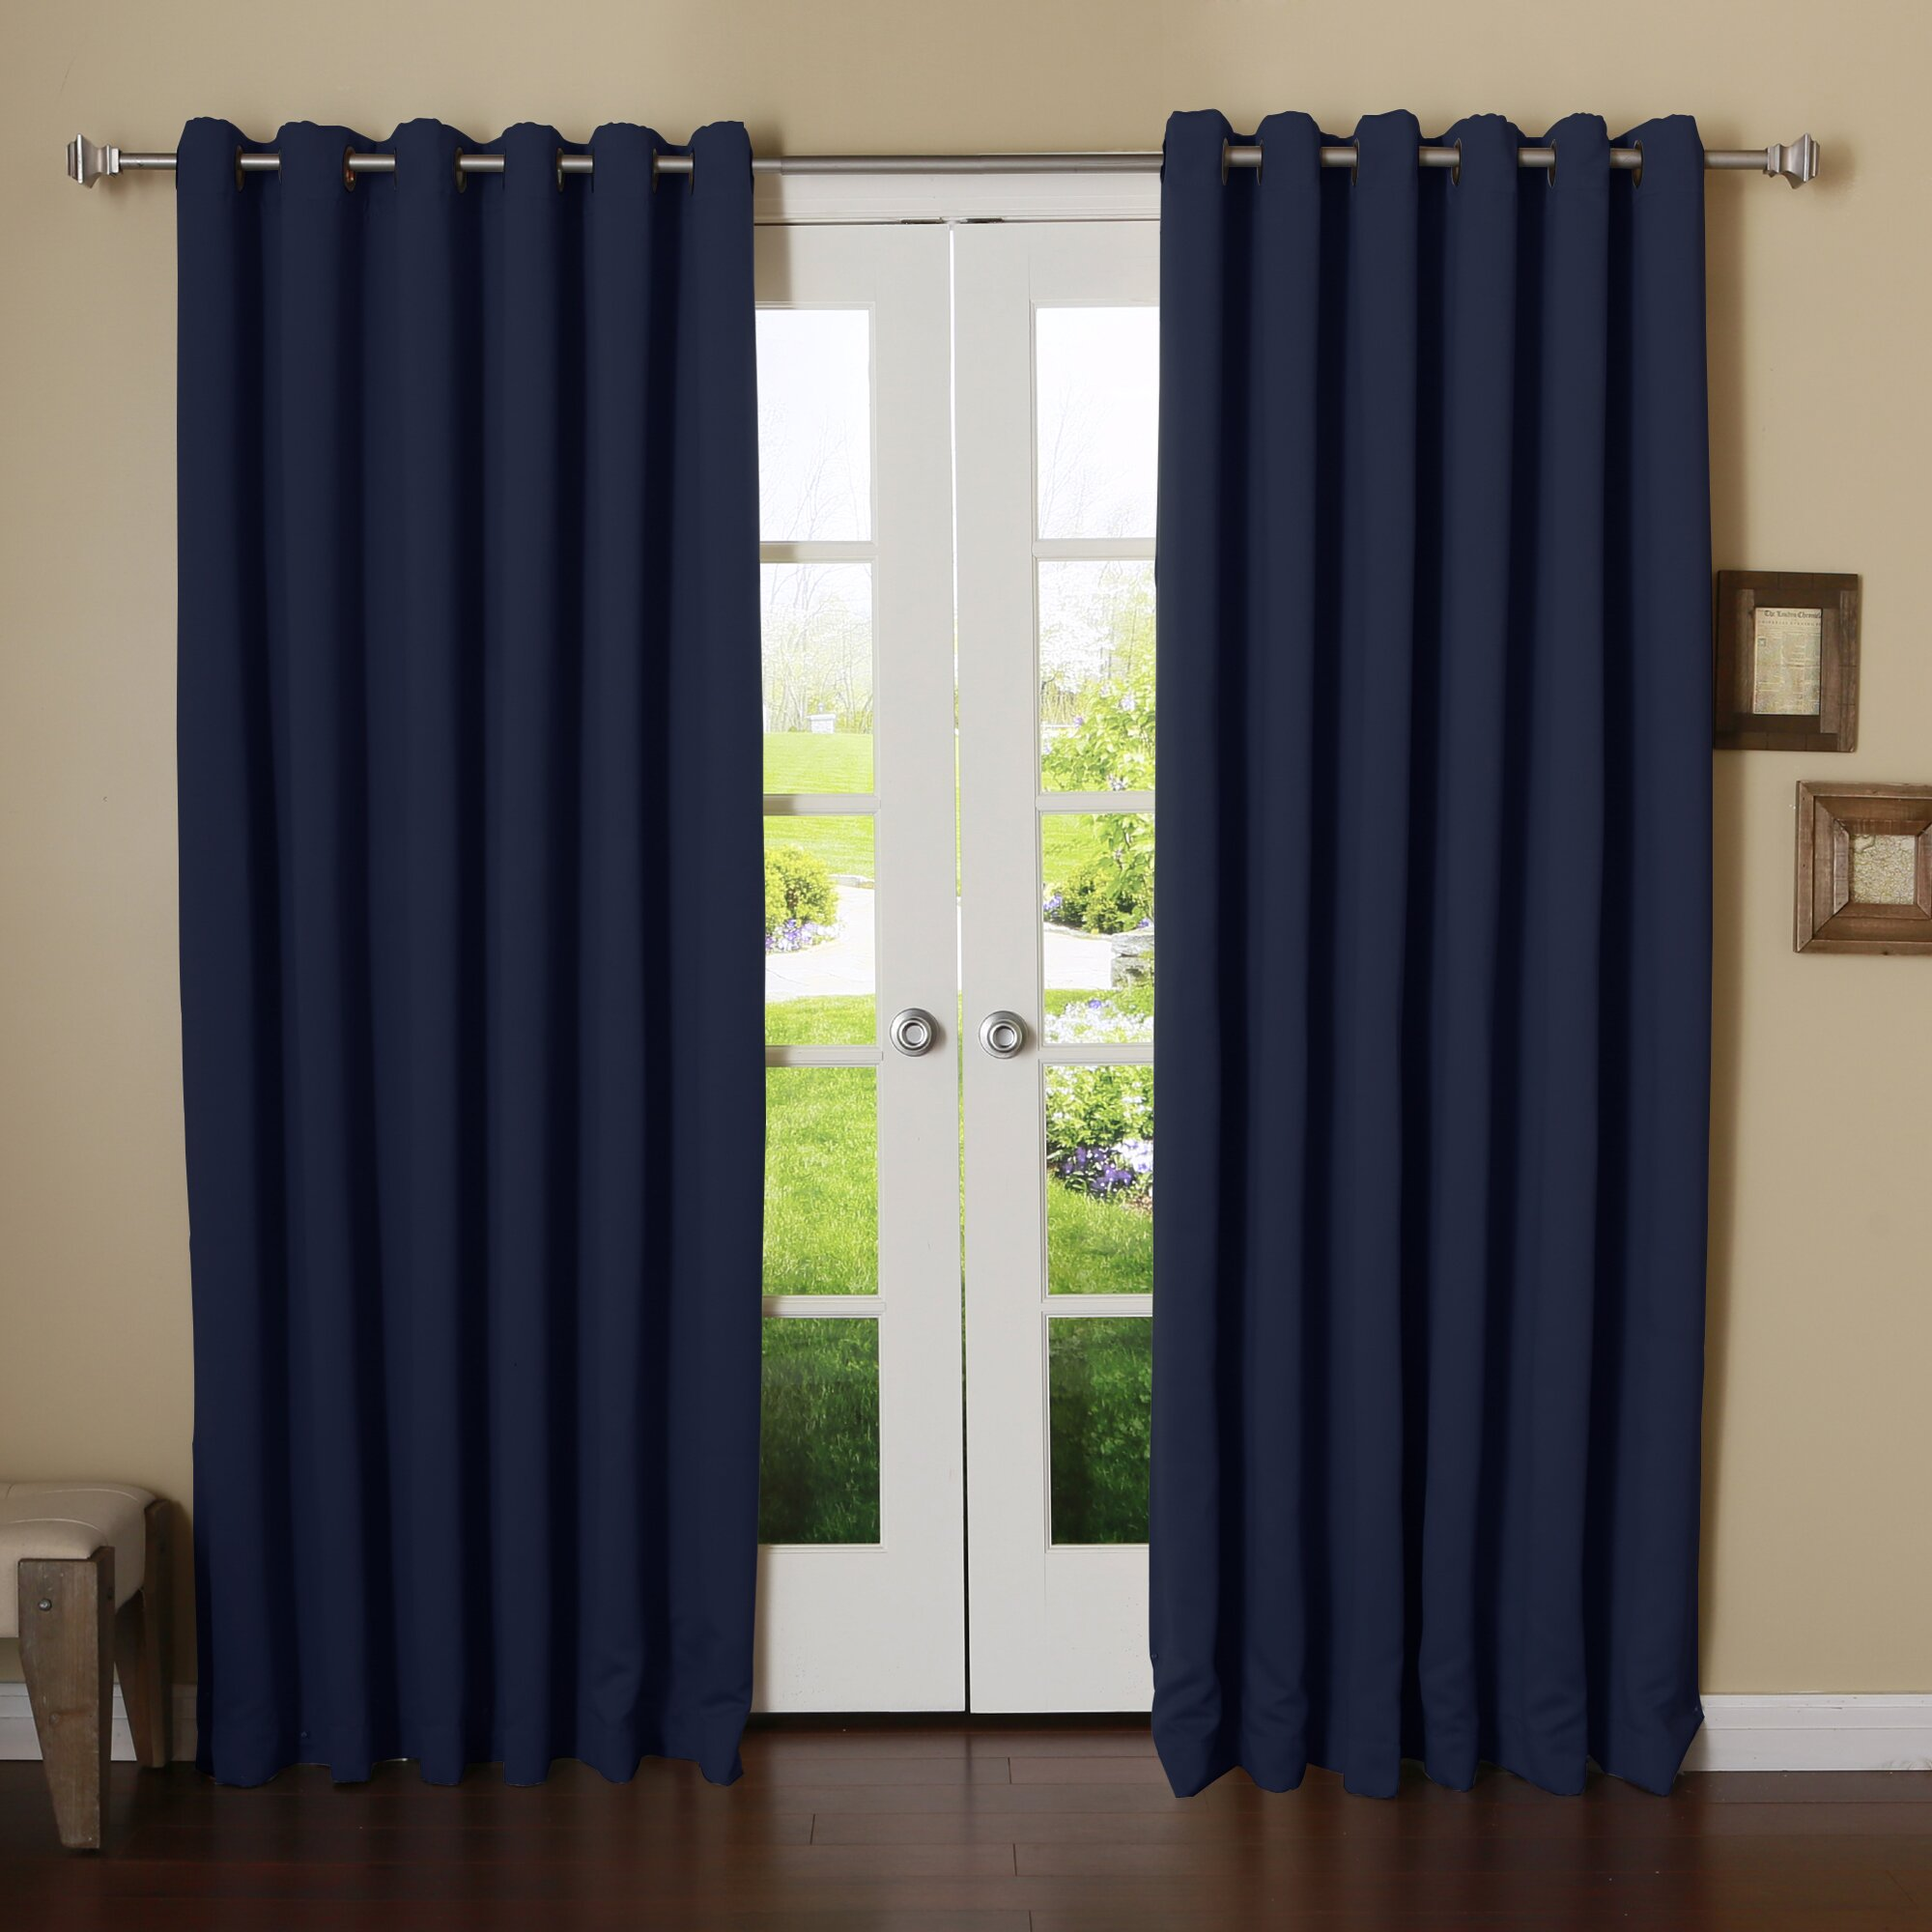 Double Layer Curtain Rod Gray Blackout Curtains